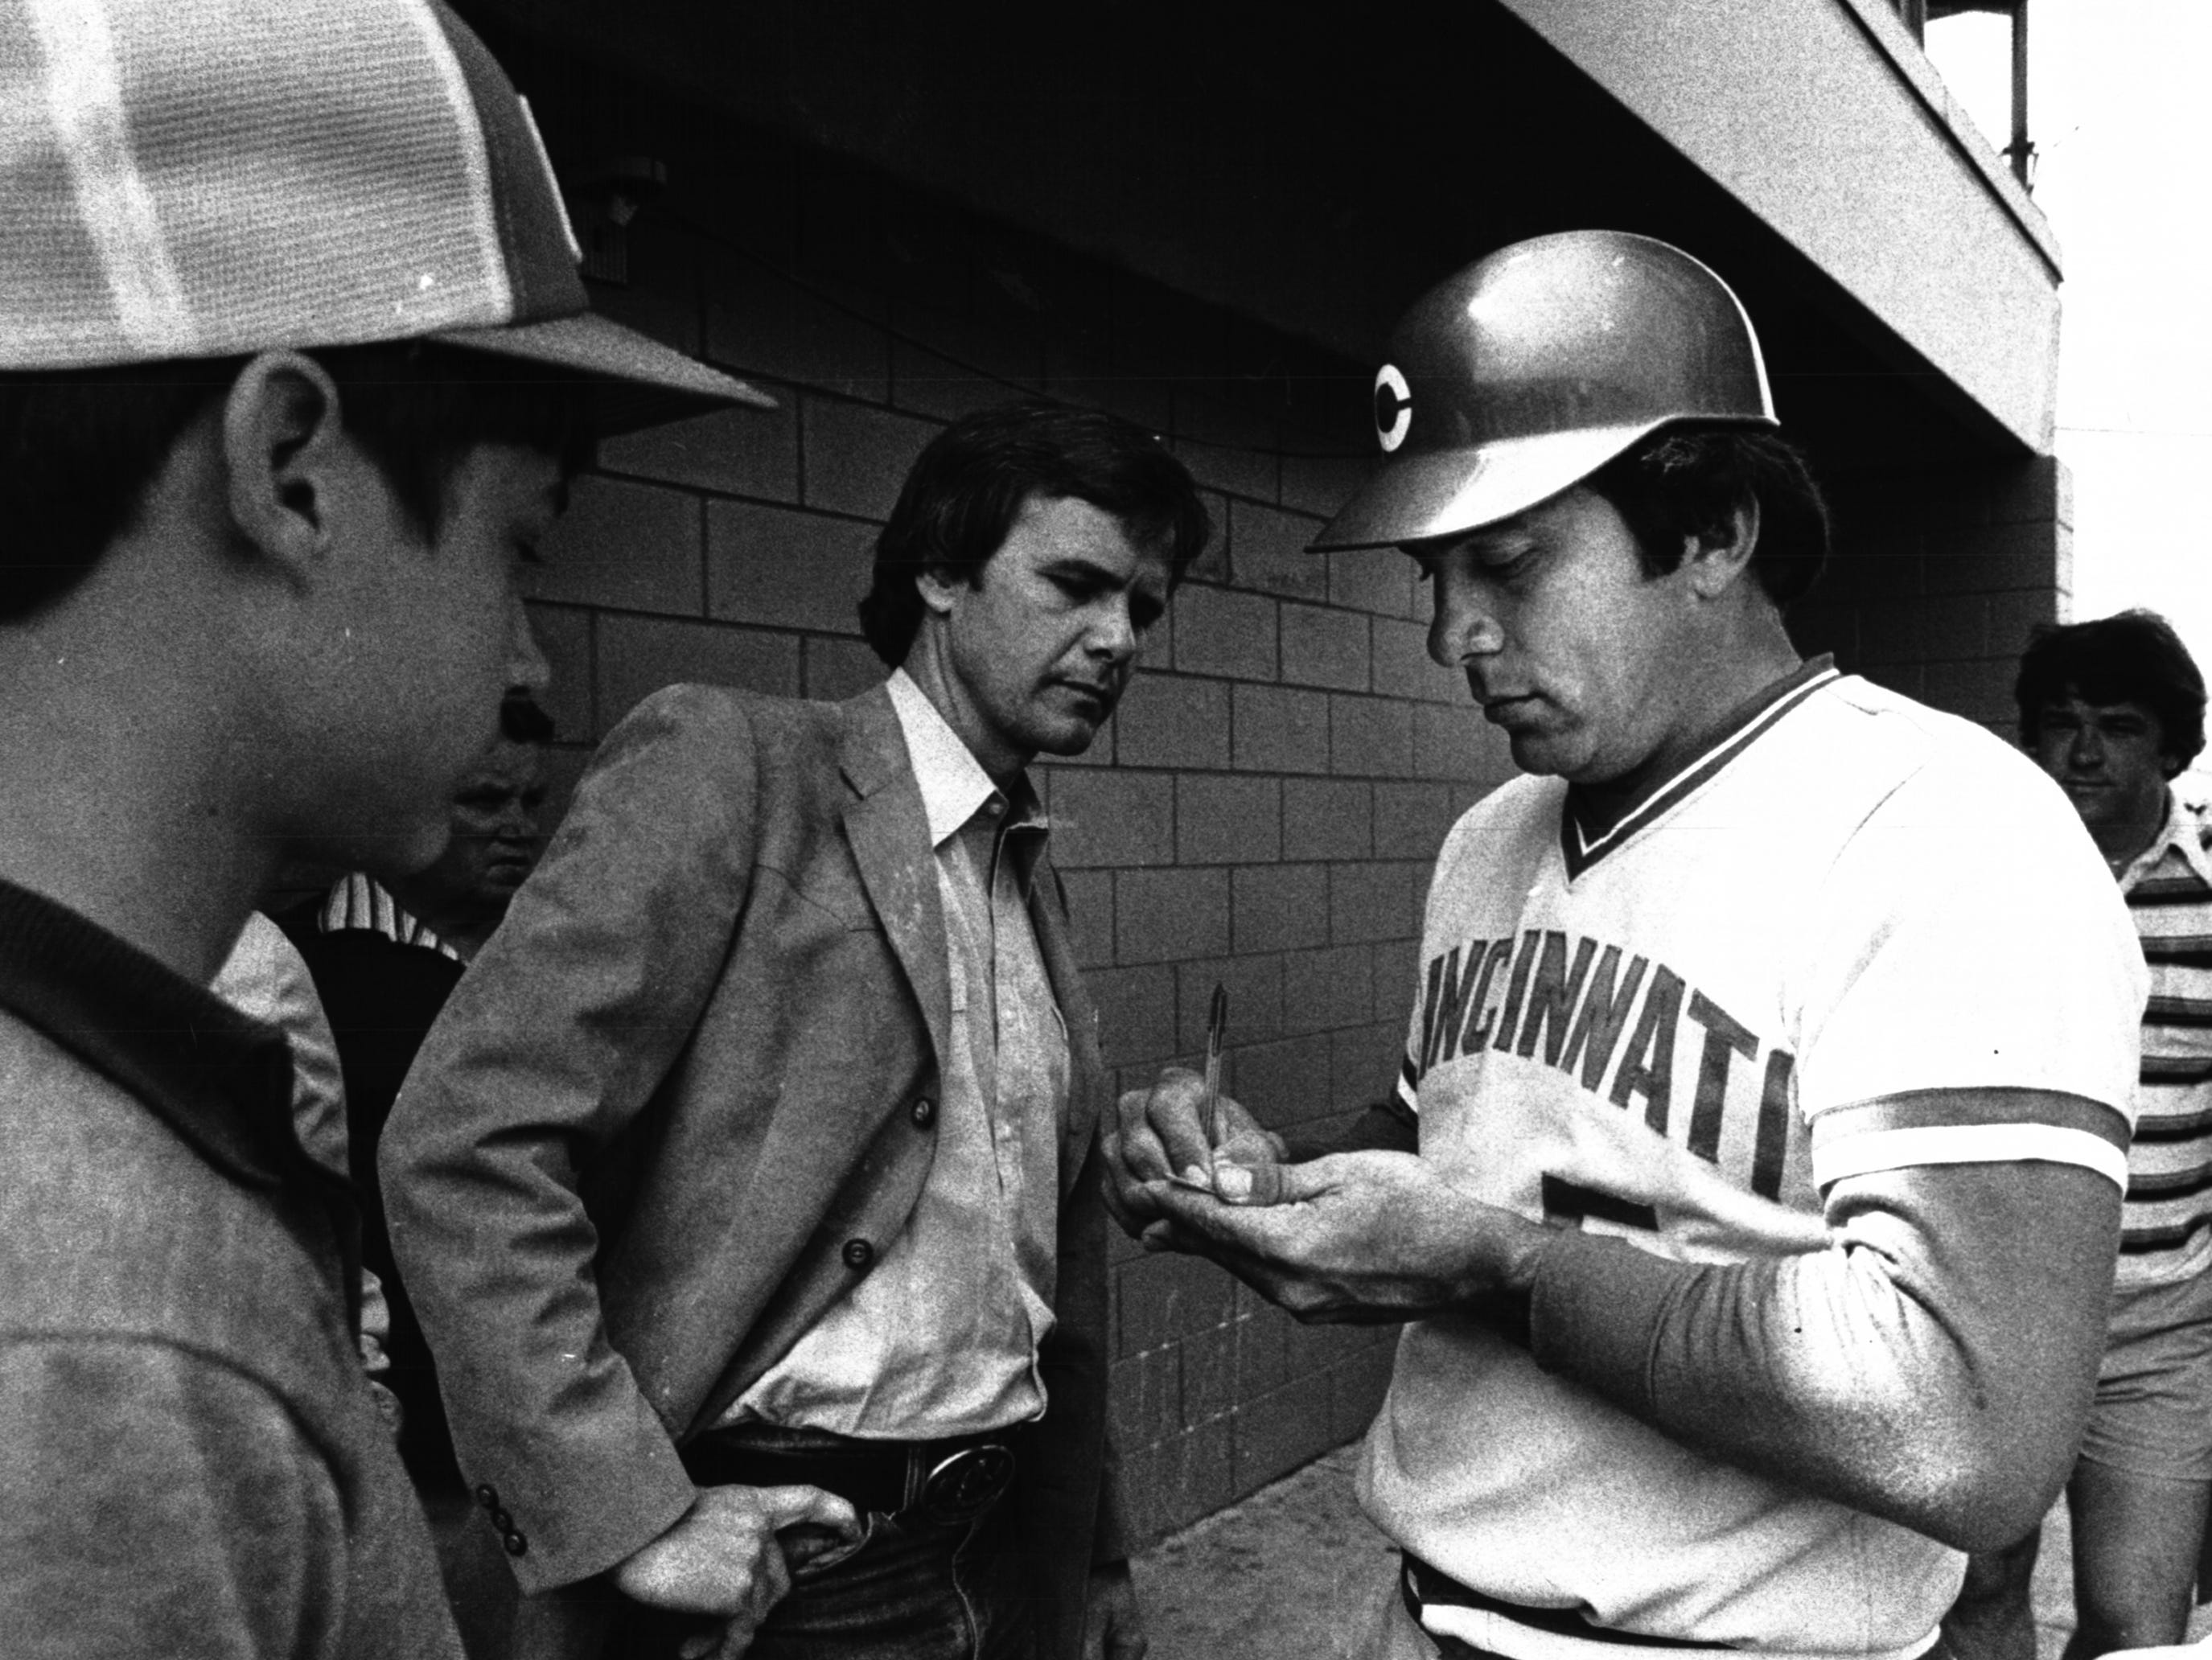 APRIL 7, 1980: Johnny Bench signs an autograph in the Al Lopez Field dugout during spring training this year as NBC Today Show host Tom Brokaw looks on. Bench is a popular figure with the national news media. Enquirer File Photo